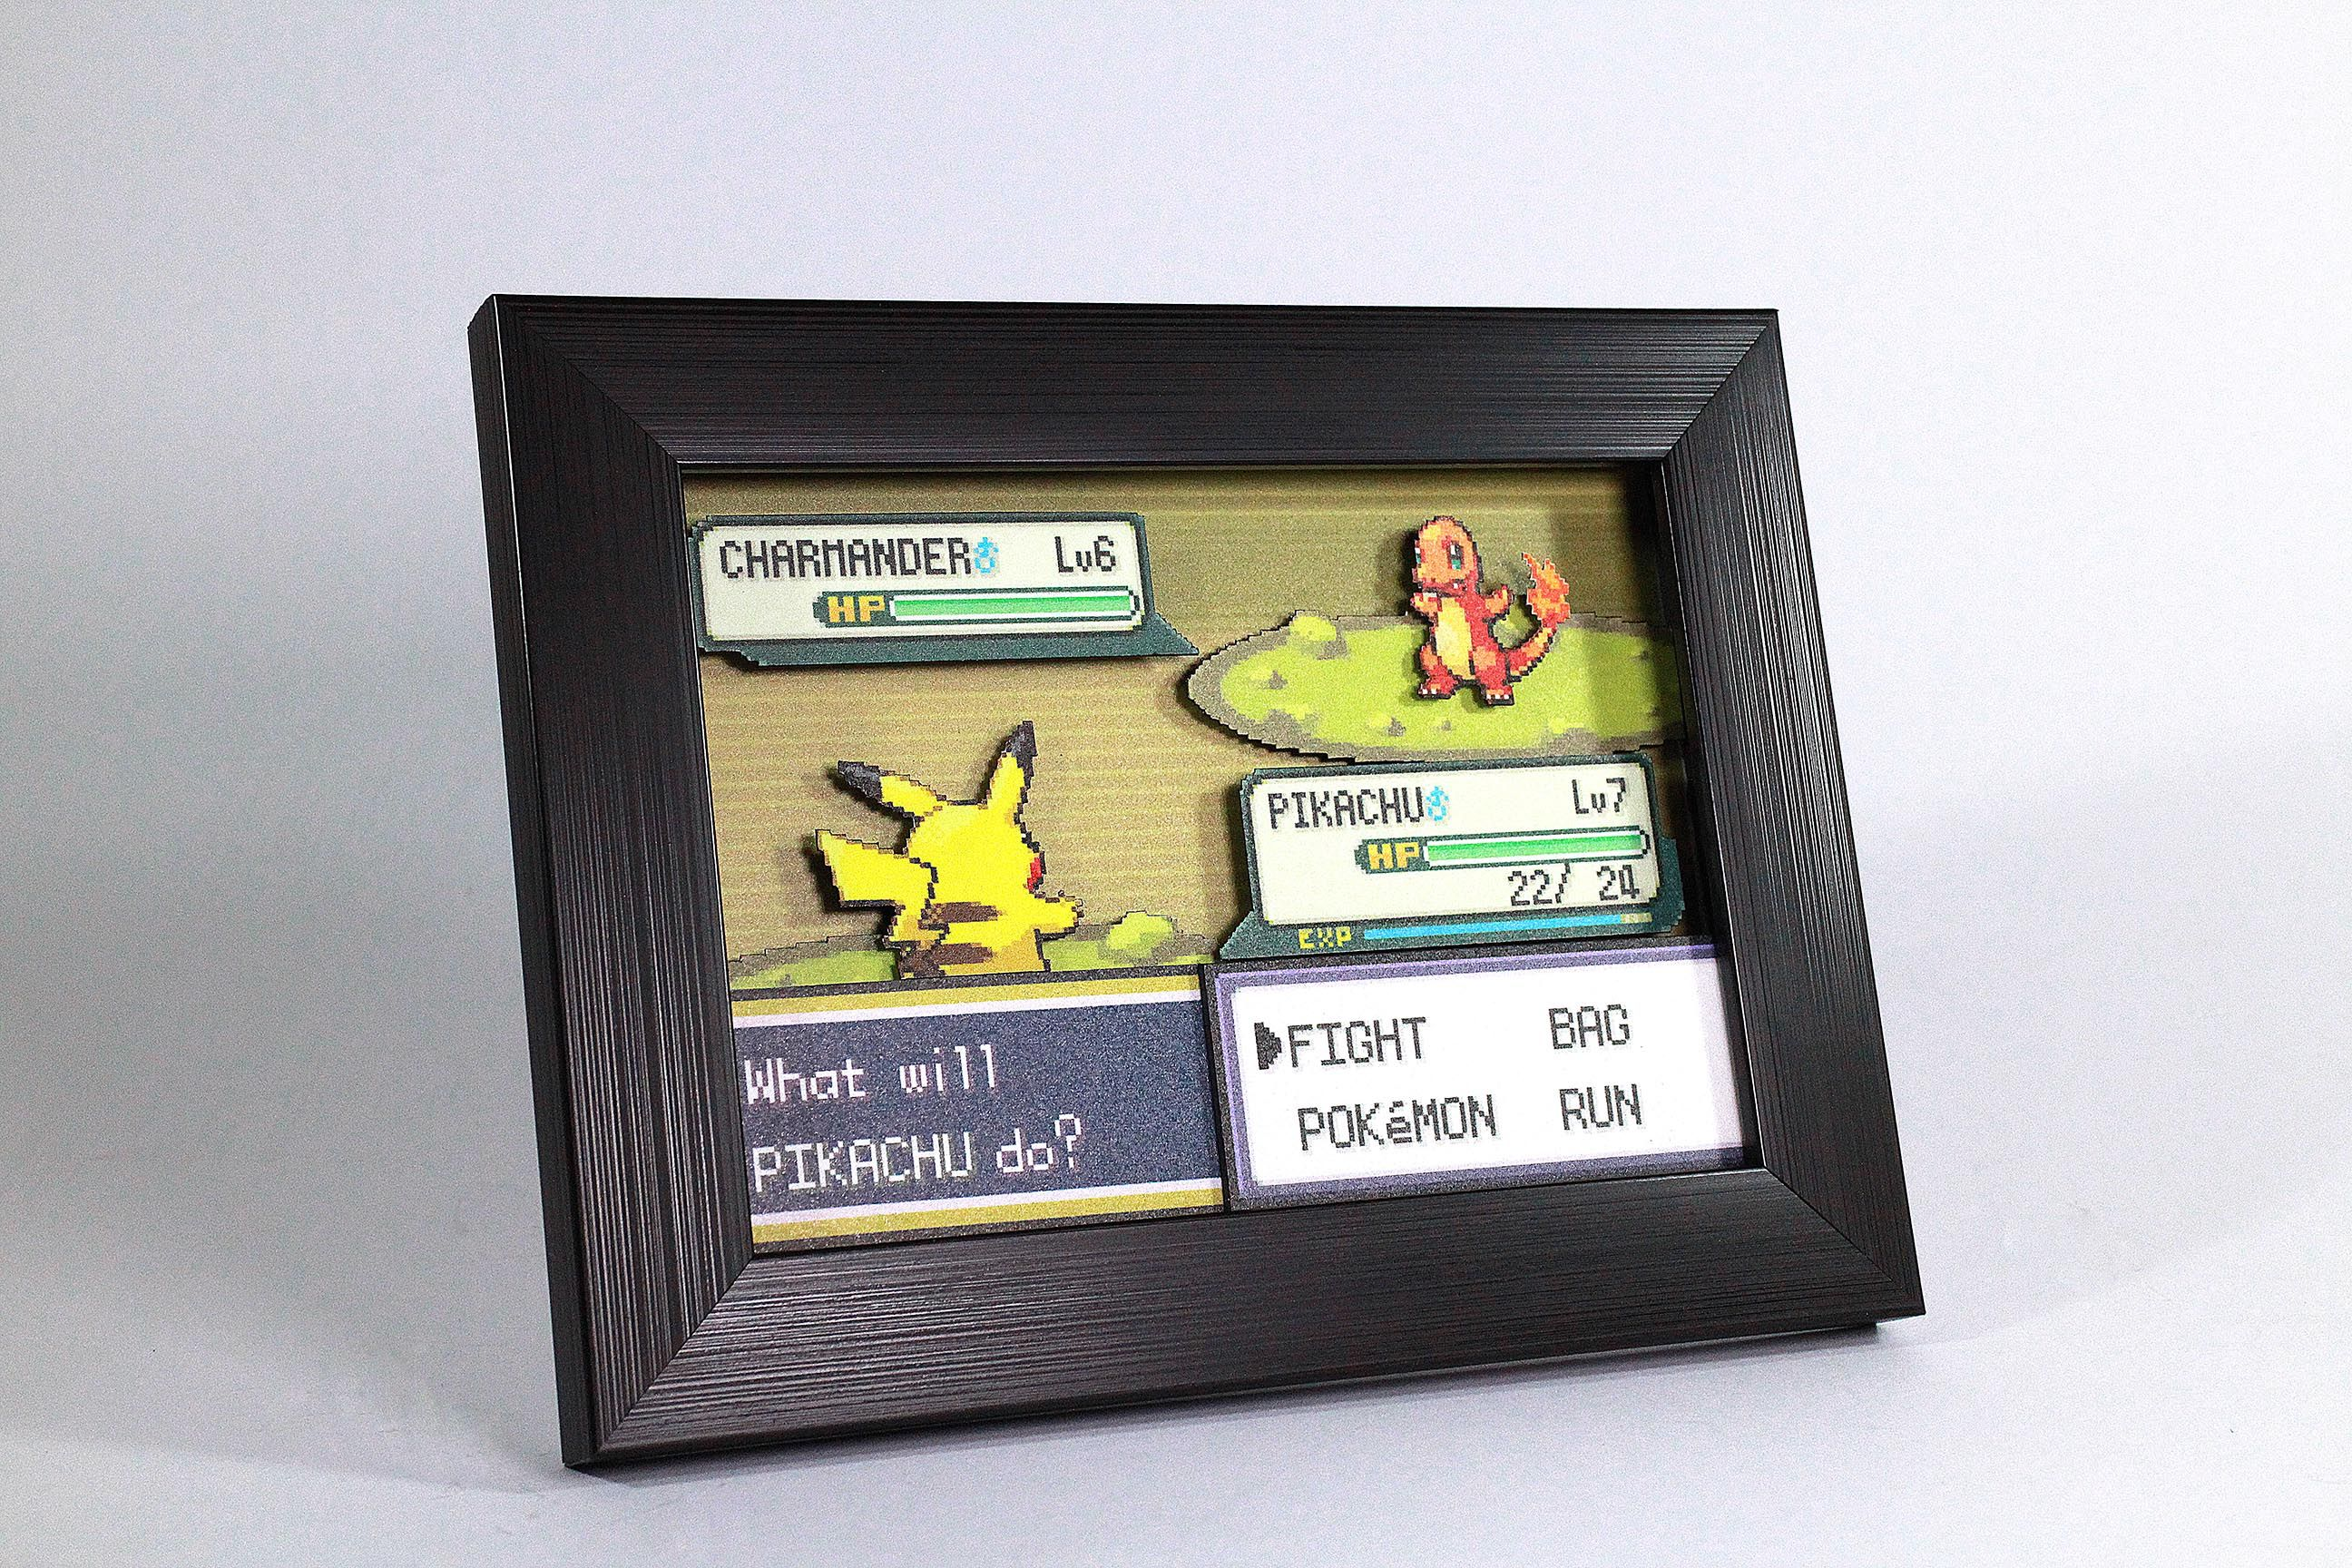 27cfca08e0647 Pokemon 3D Shadow Box Diorama featuring Pikachu versus Charmander ...